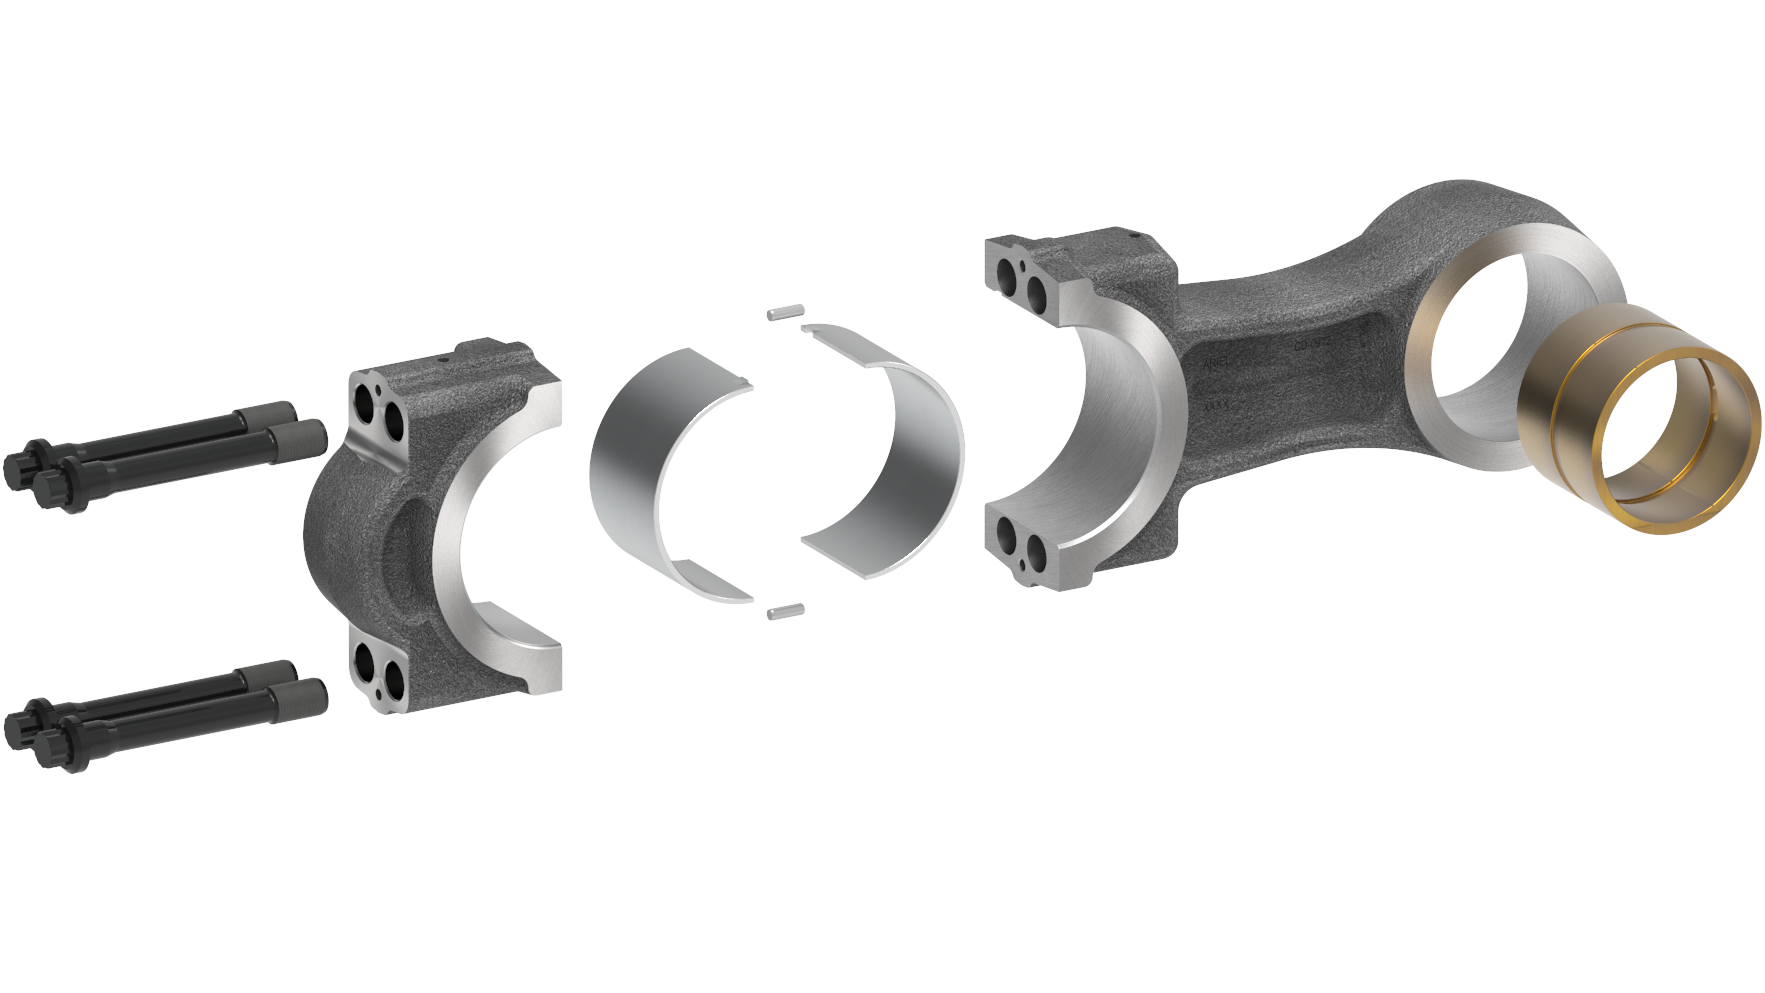 Mid Line Connecting Rod Disassembled